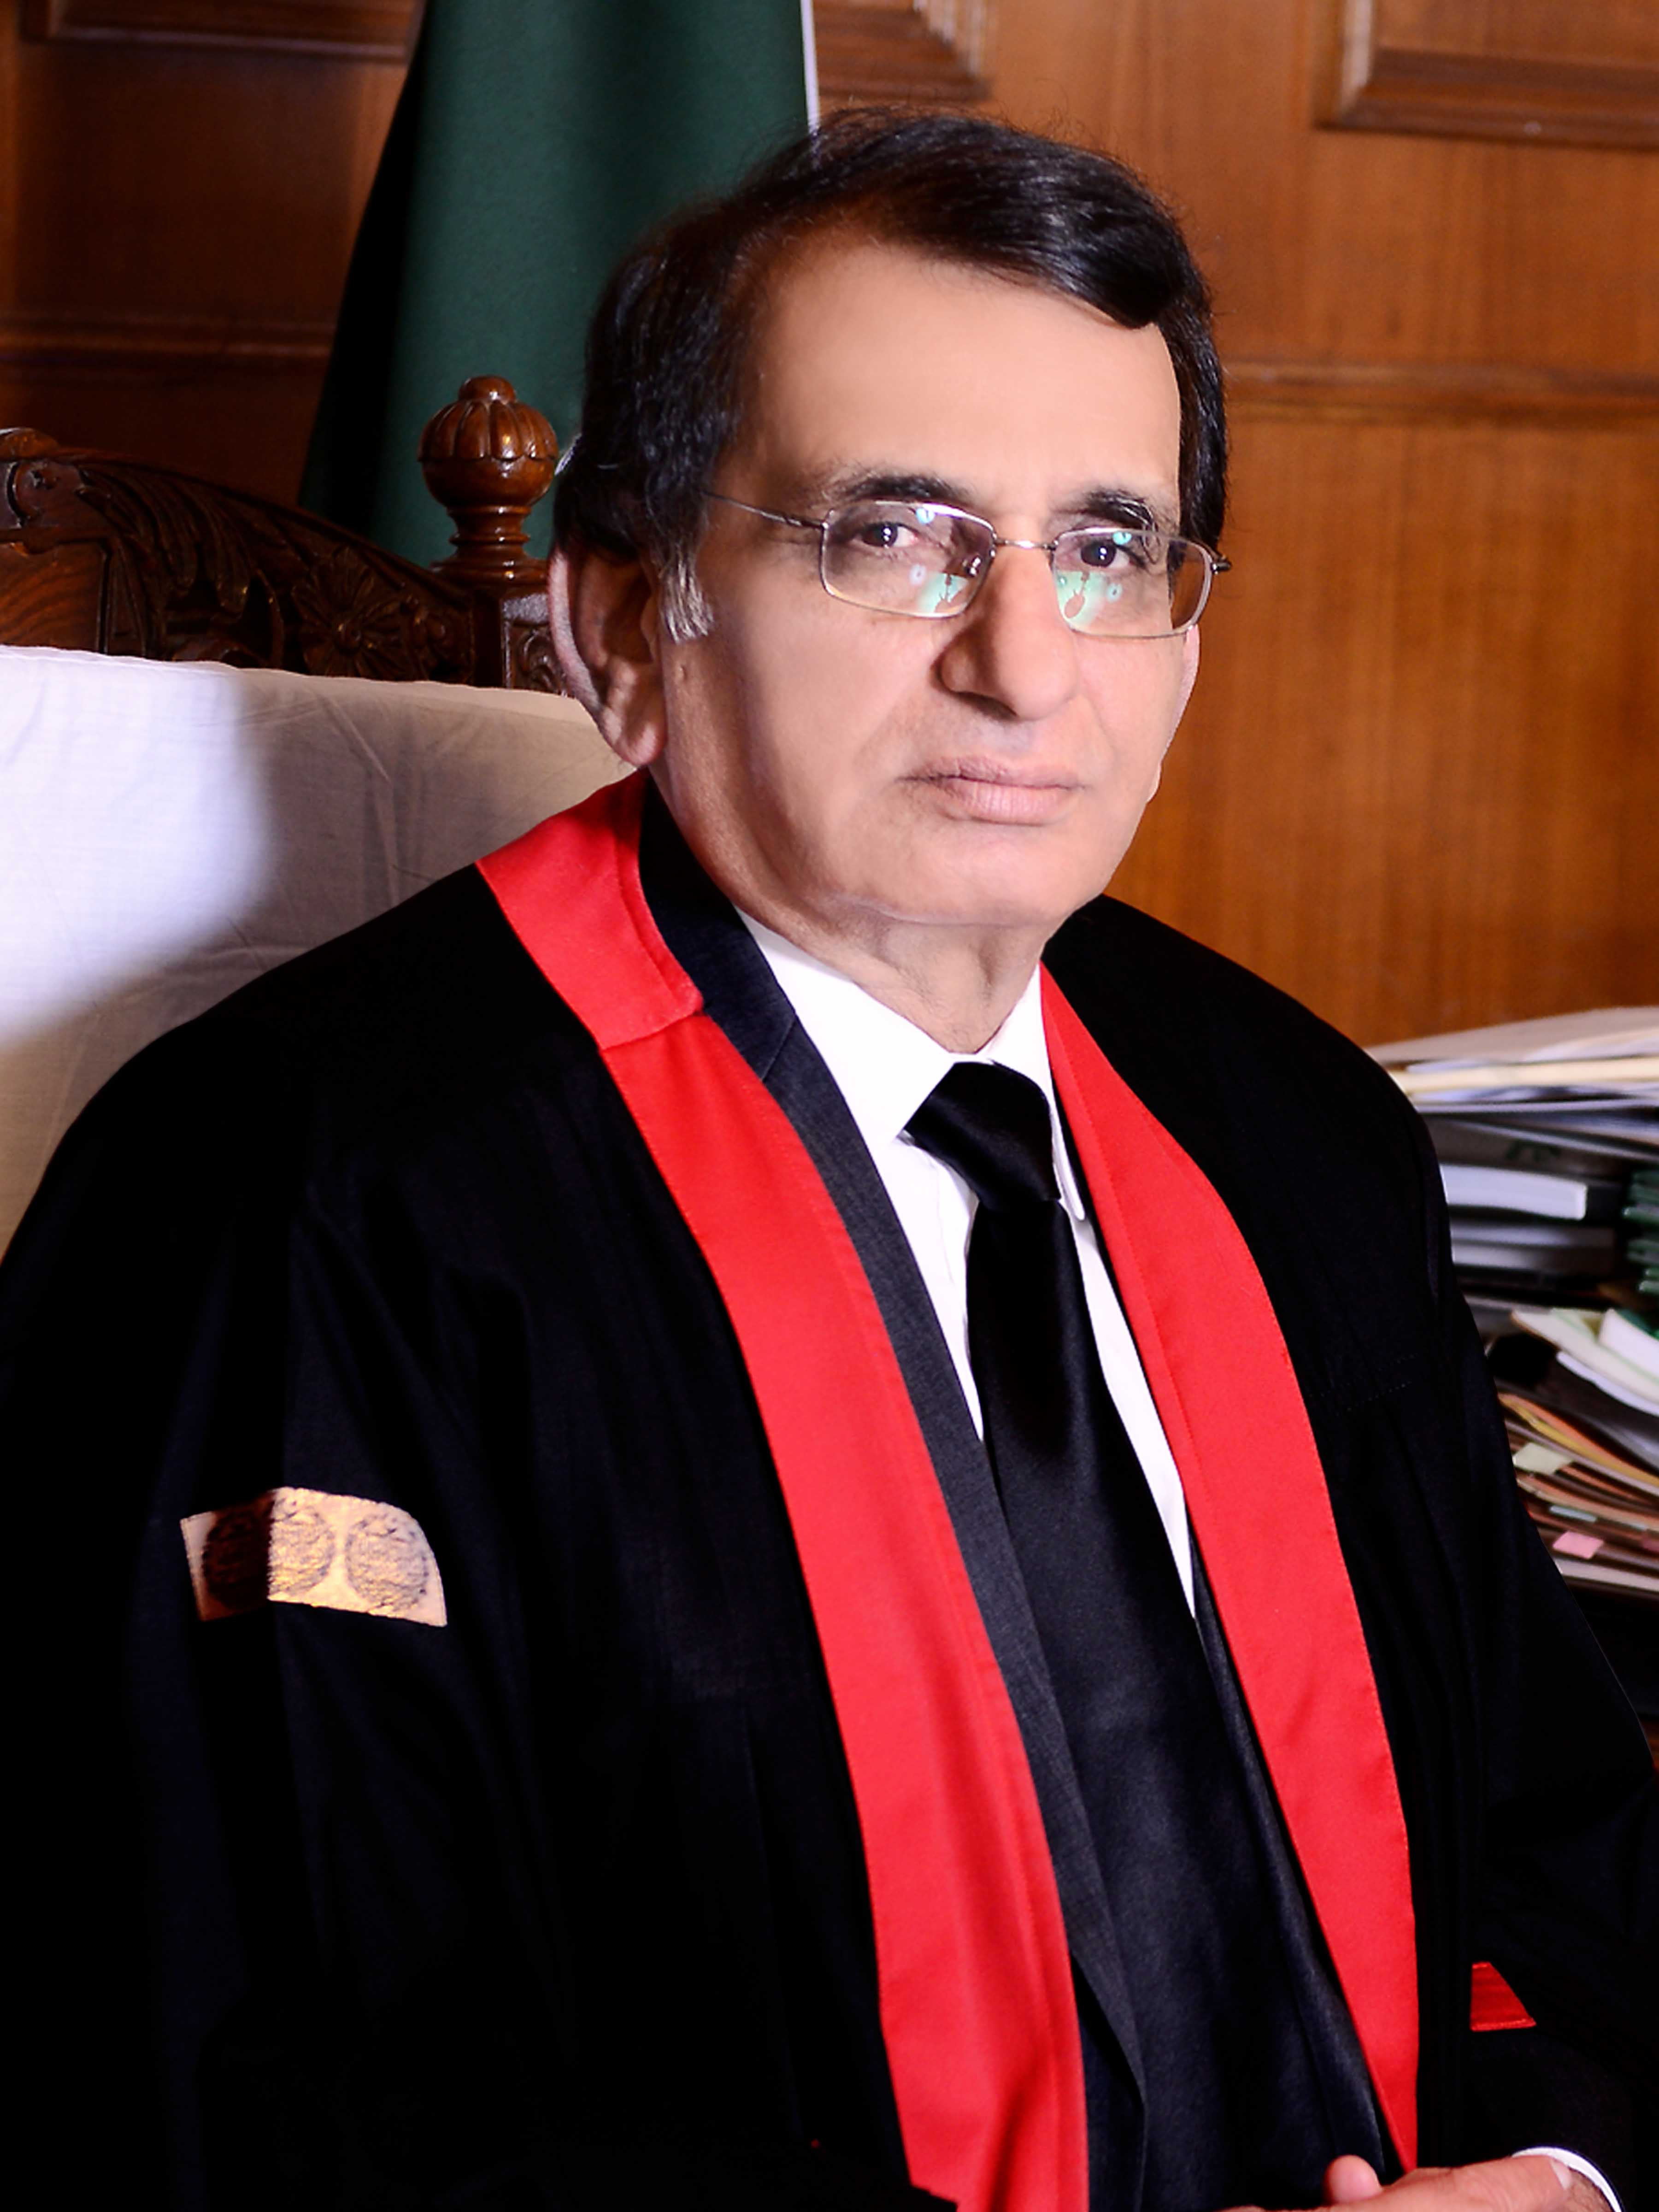 MrJustice Manzoor Ahmad Malik Was Elevated To The Bench On 15092009 He Has Been A Practicing Advocate At Honble Supreme Court Of Pakistan And High